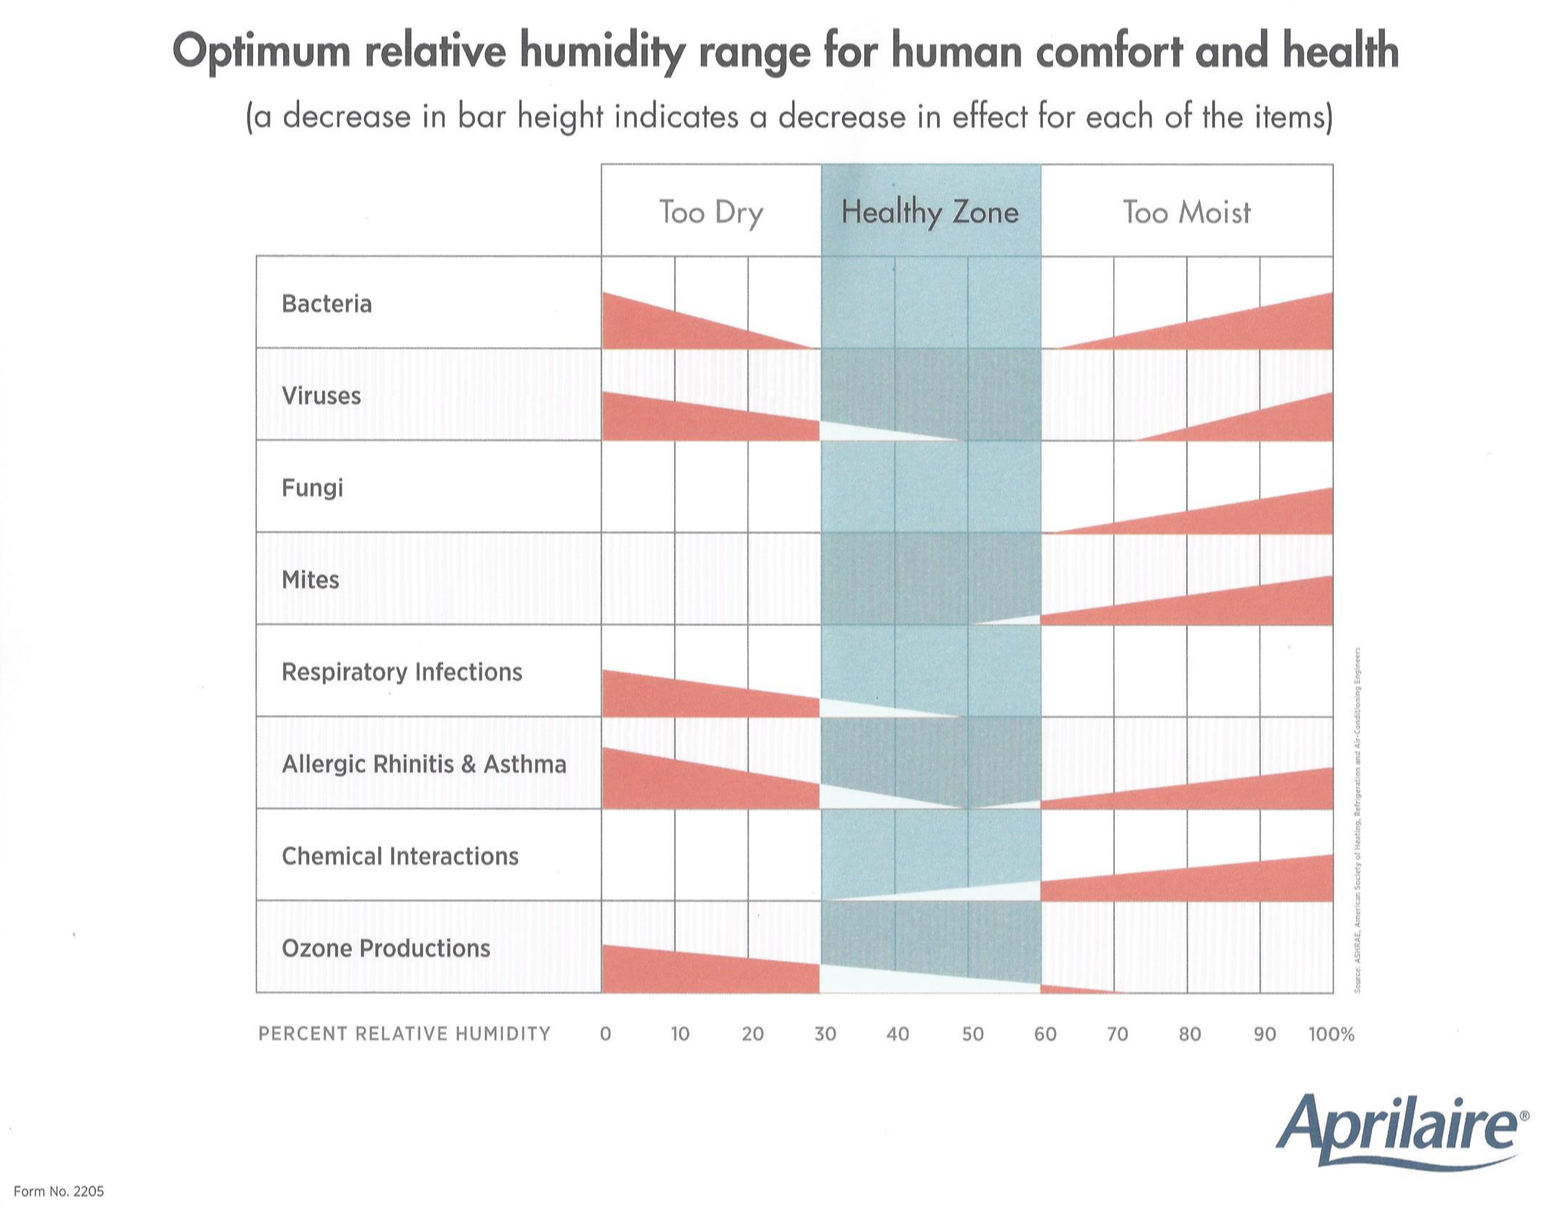 Optimum Relative Humidty Range for Human Comfort and Health